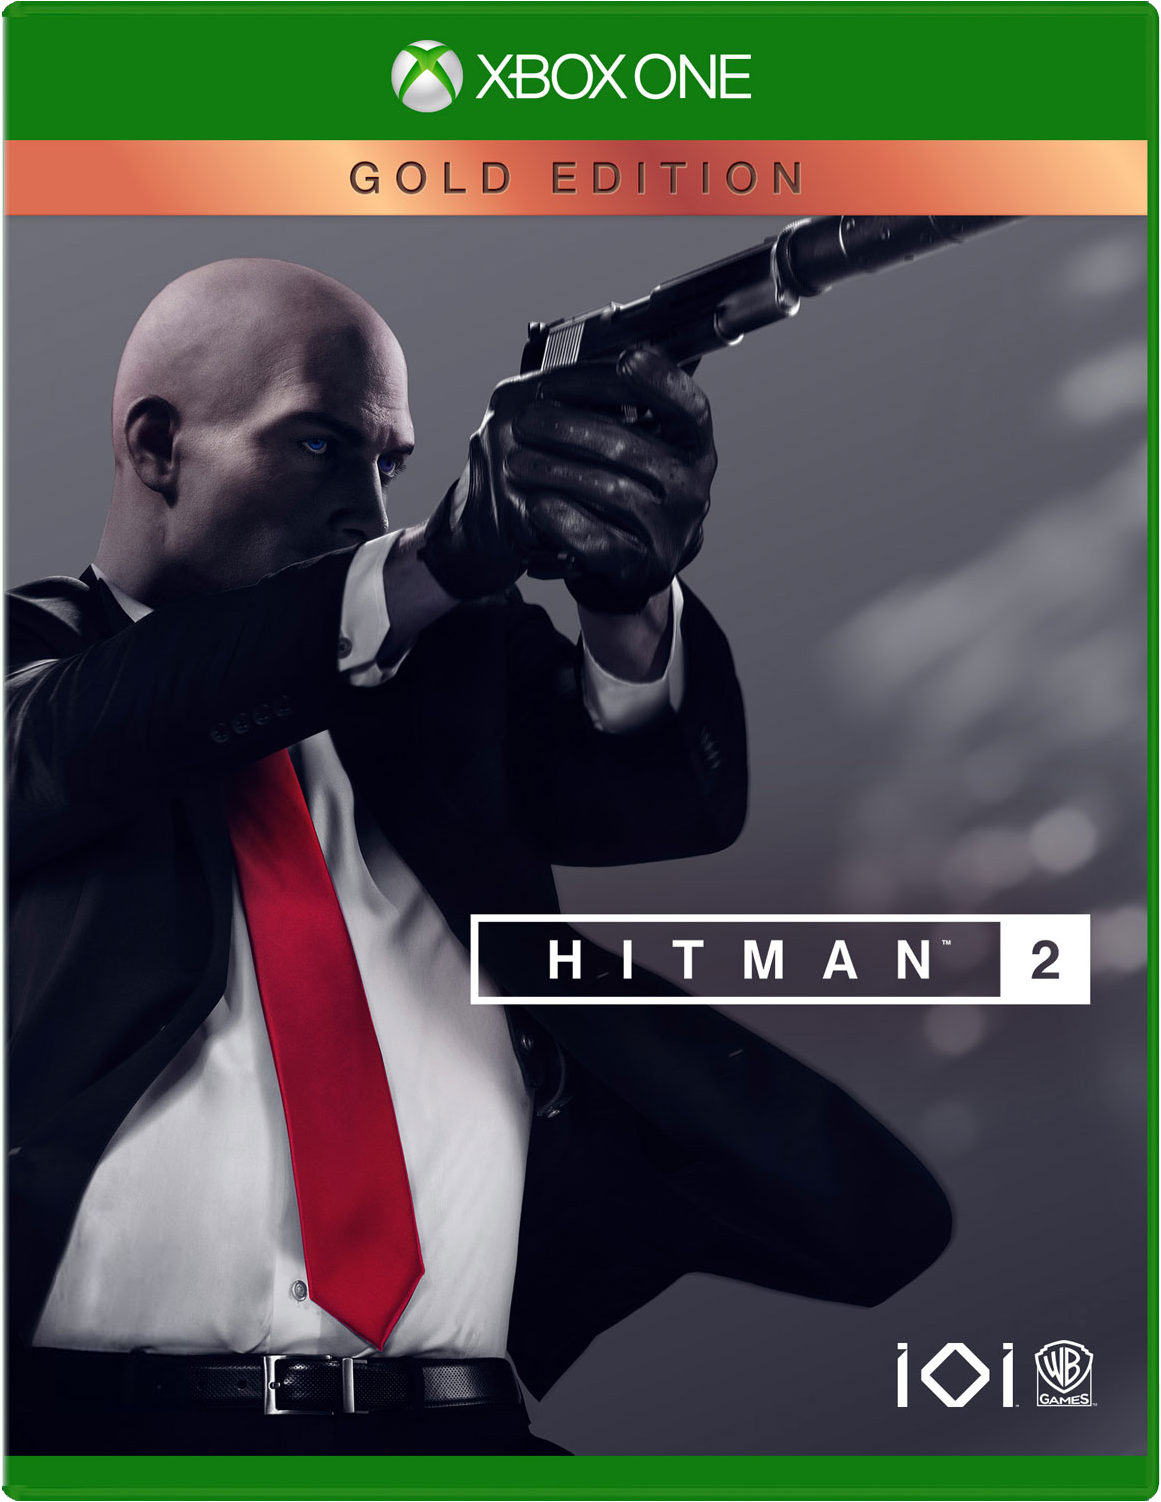 Buy Hitman 2 for Xbox One - Microsoft Store